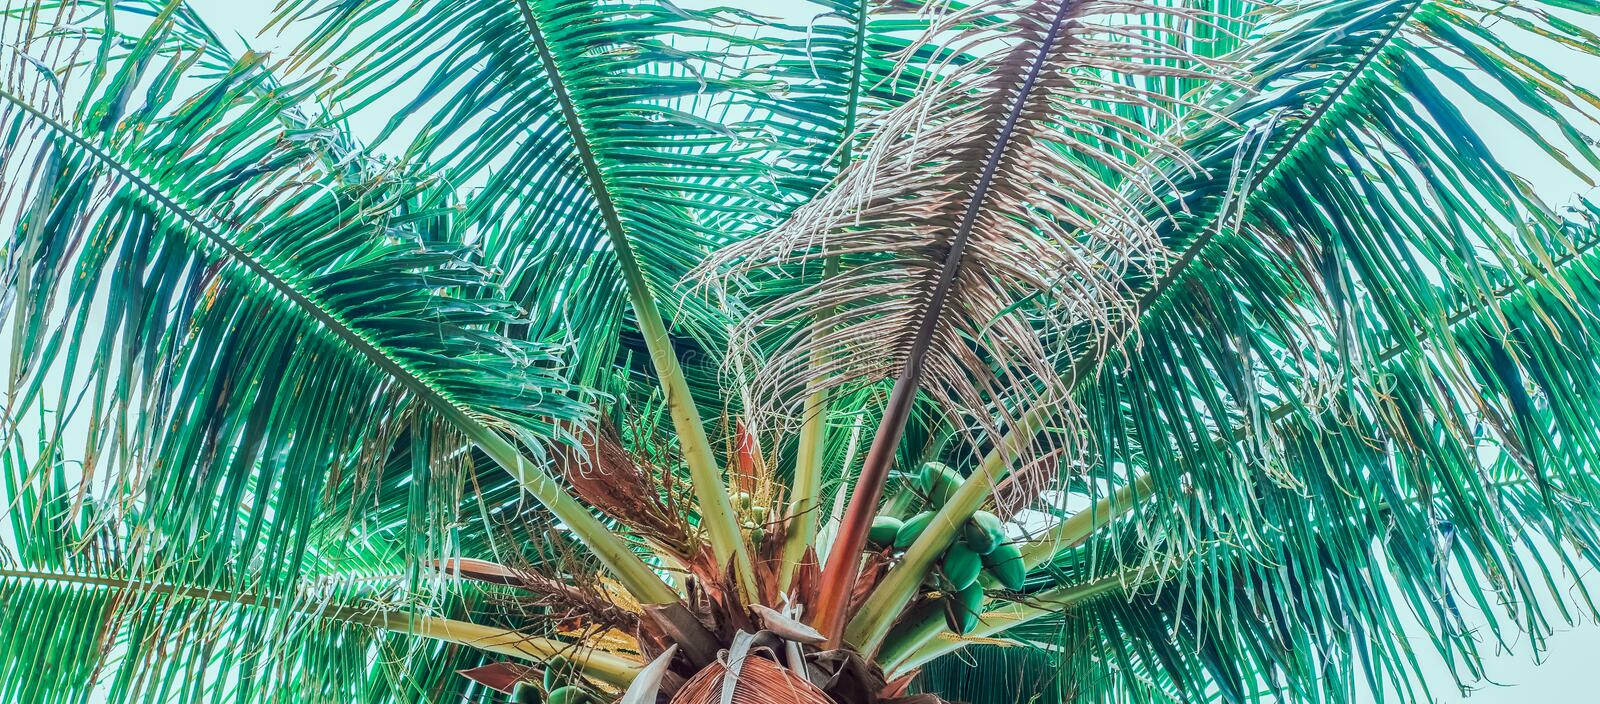 Half of the top of a palm tree royalty free stock photo